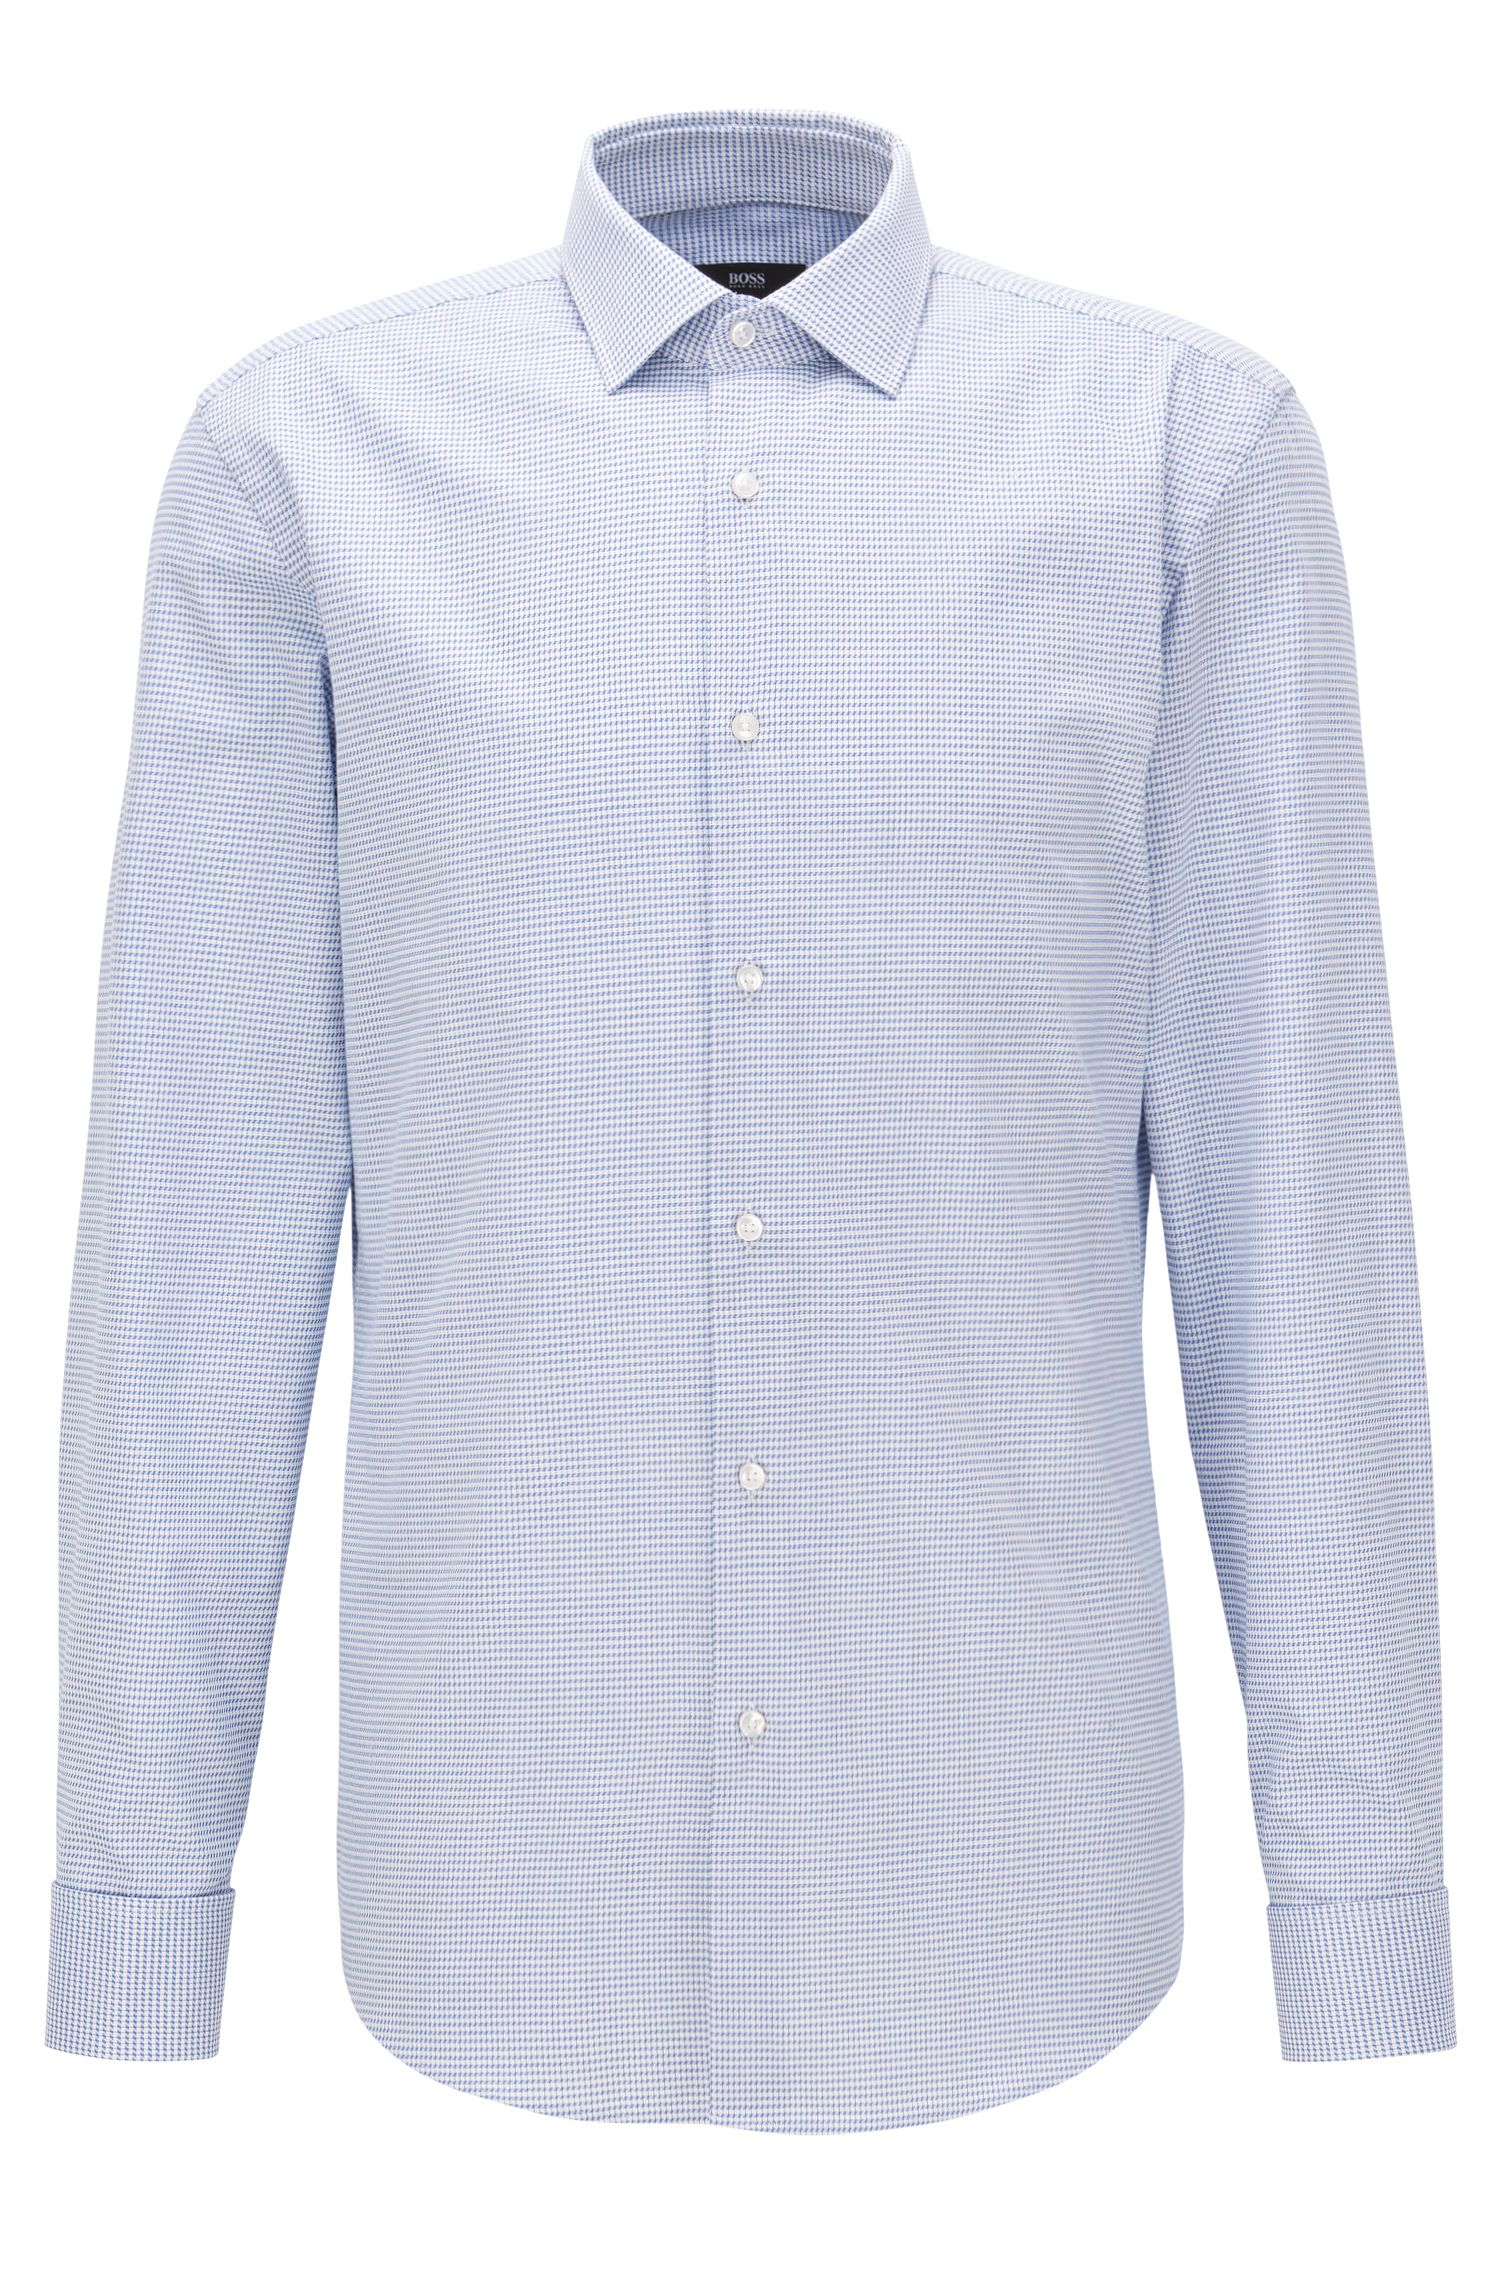 Double-cuffed patterned cotton twill shirt in a slim fit